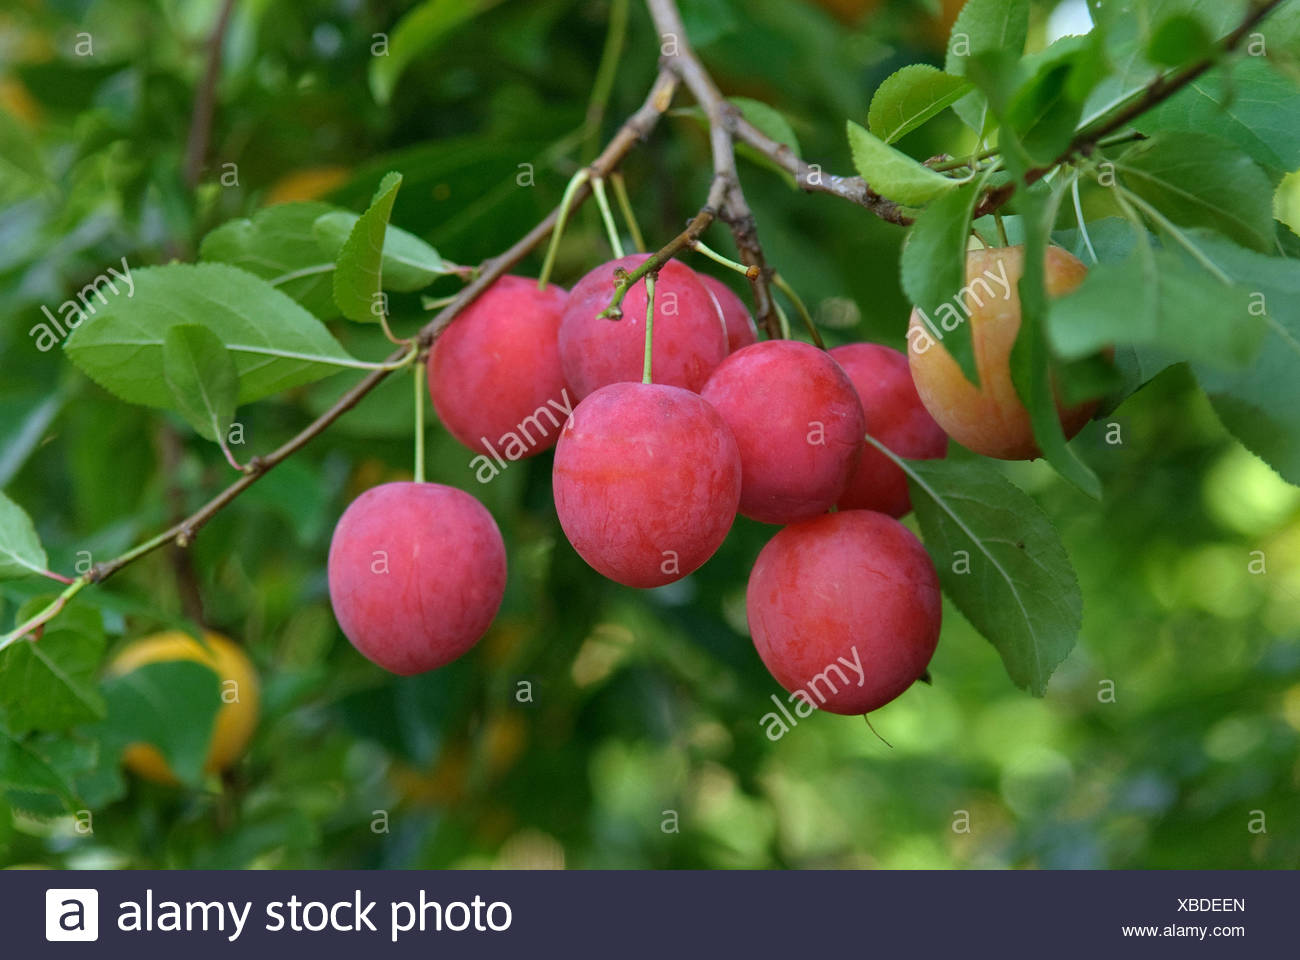 Cherry Plum Myrobalan Plum Prunus Cerasifera Cherry Plums On A